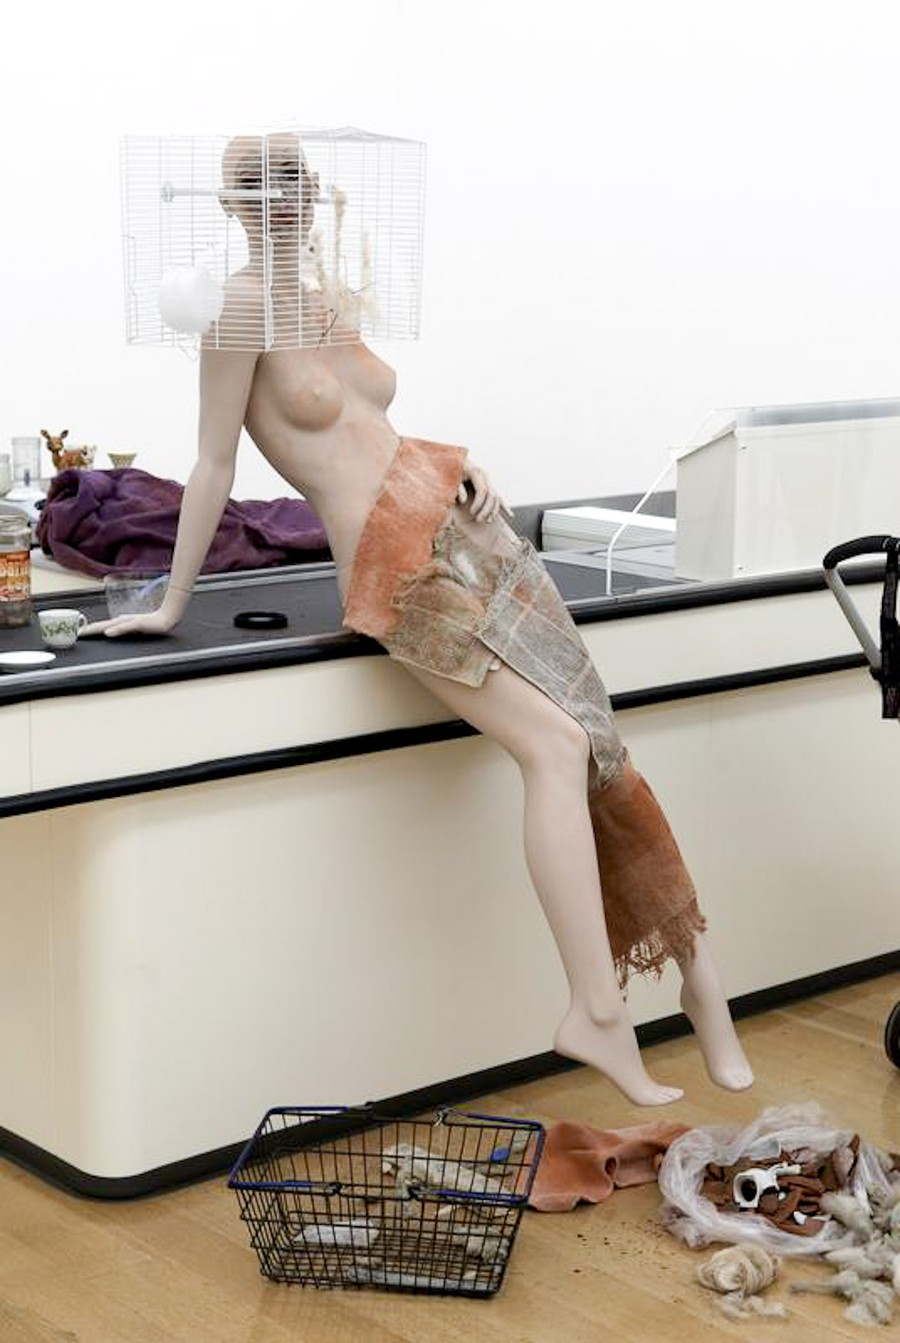 Wilkes uses old mannequins, among other objects, in her work.